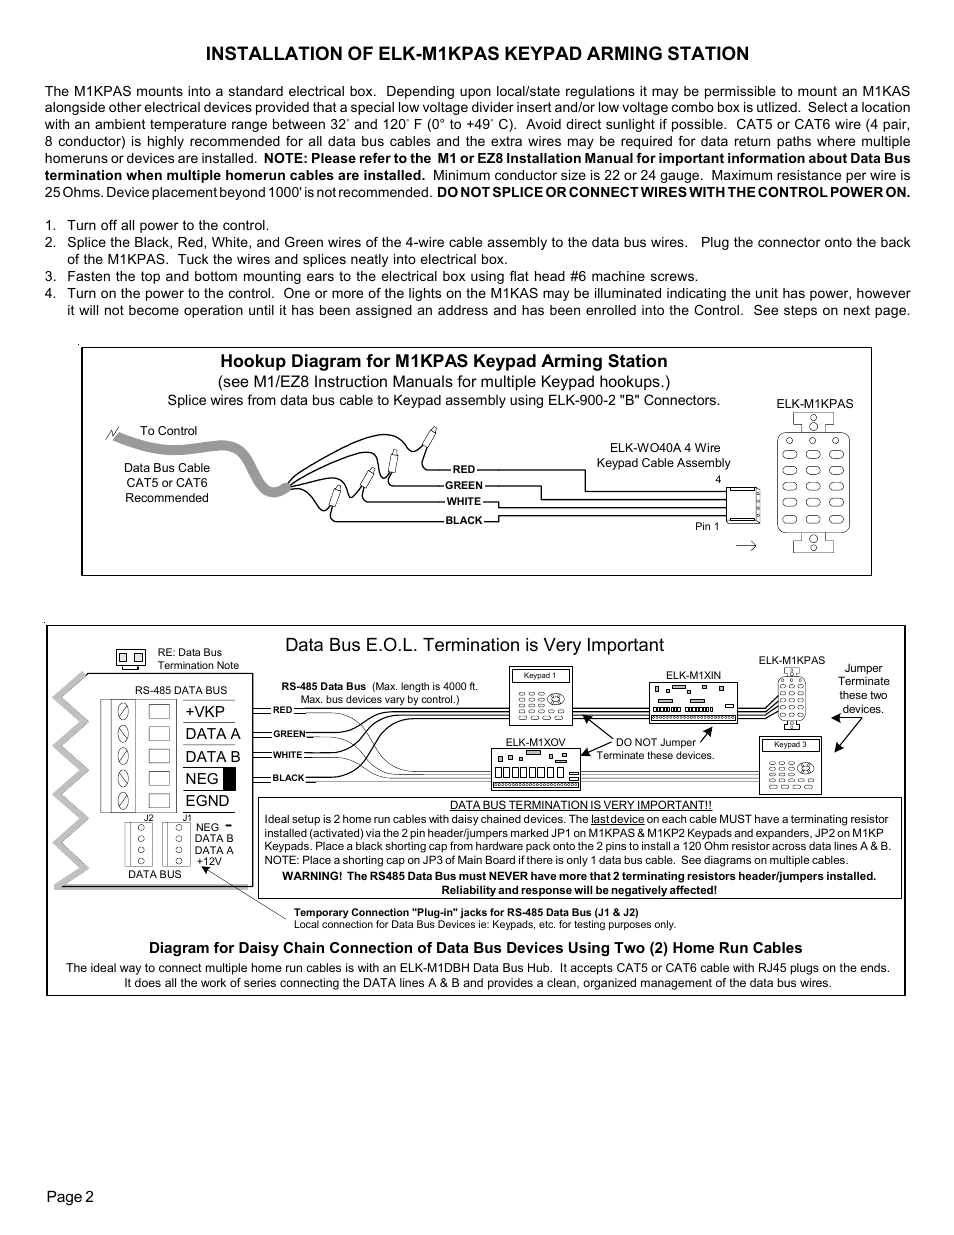 hight resolution of installation of elk m1kpas keypad arming station data bus e o l termination is very important hookup diagram for m1kpas keypad arming station elk